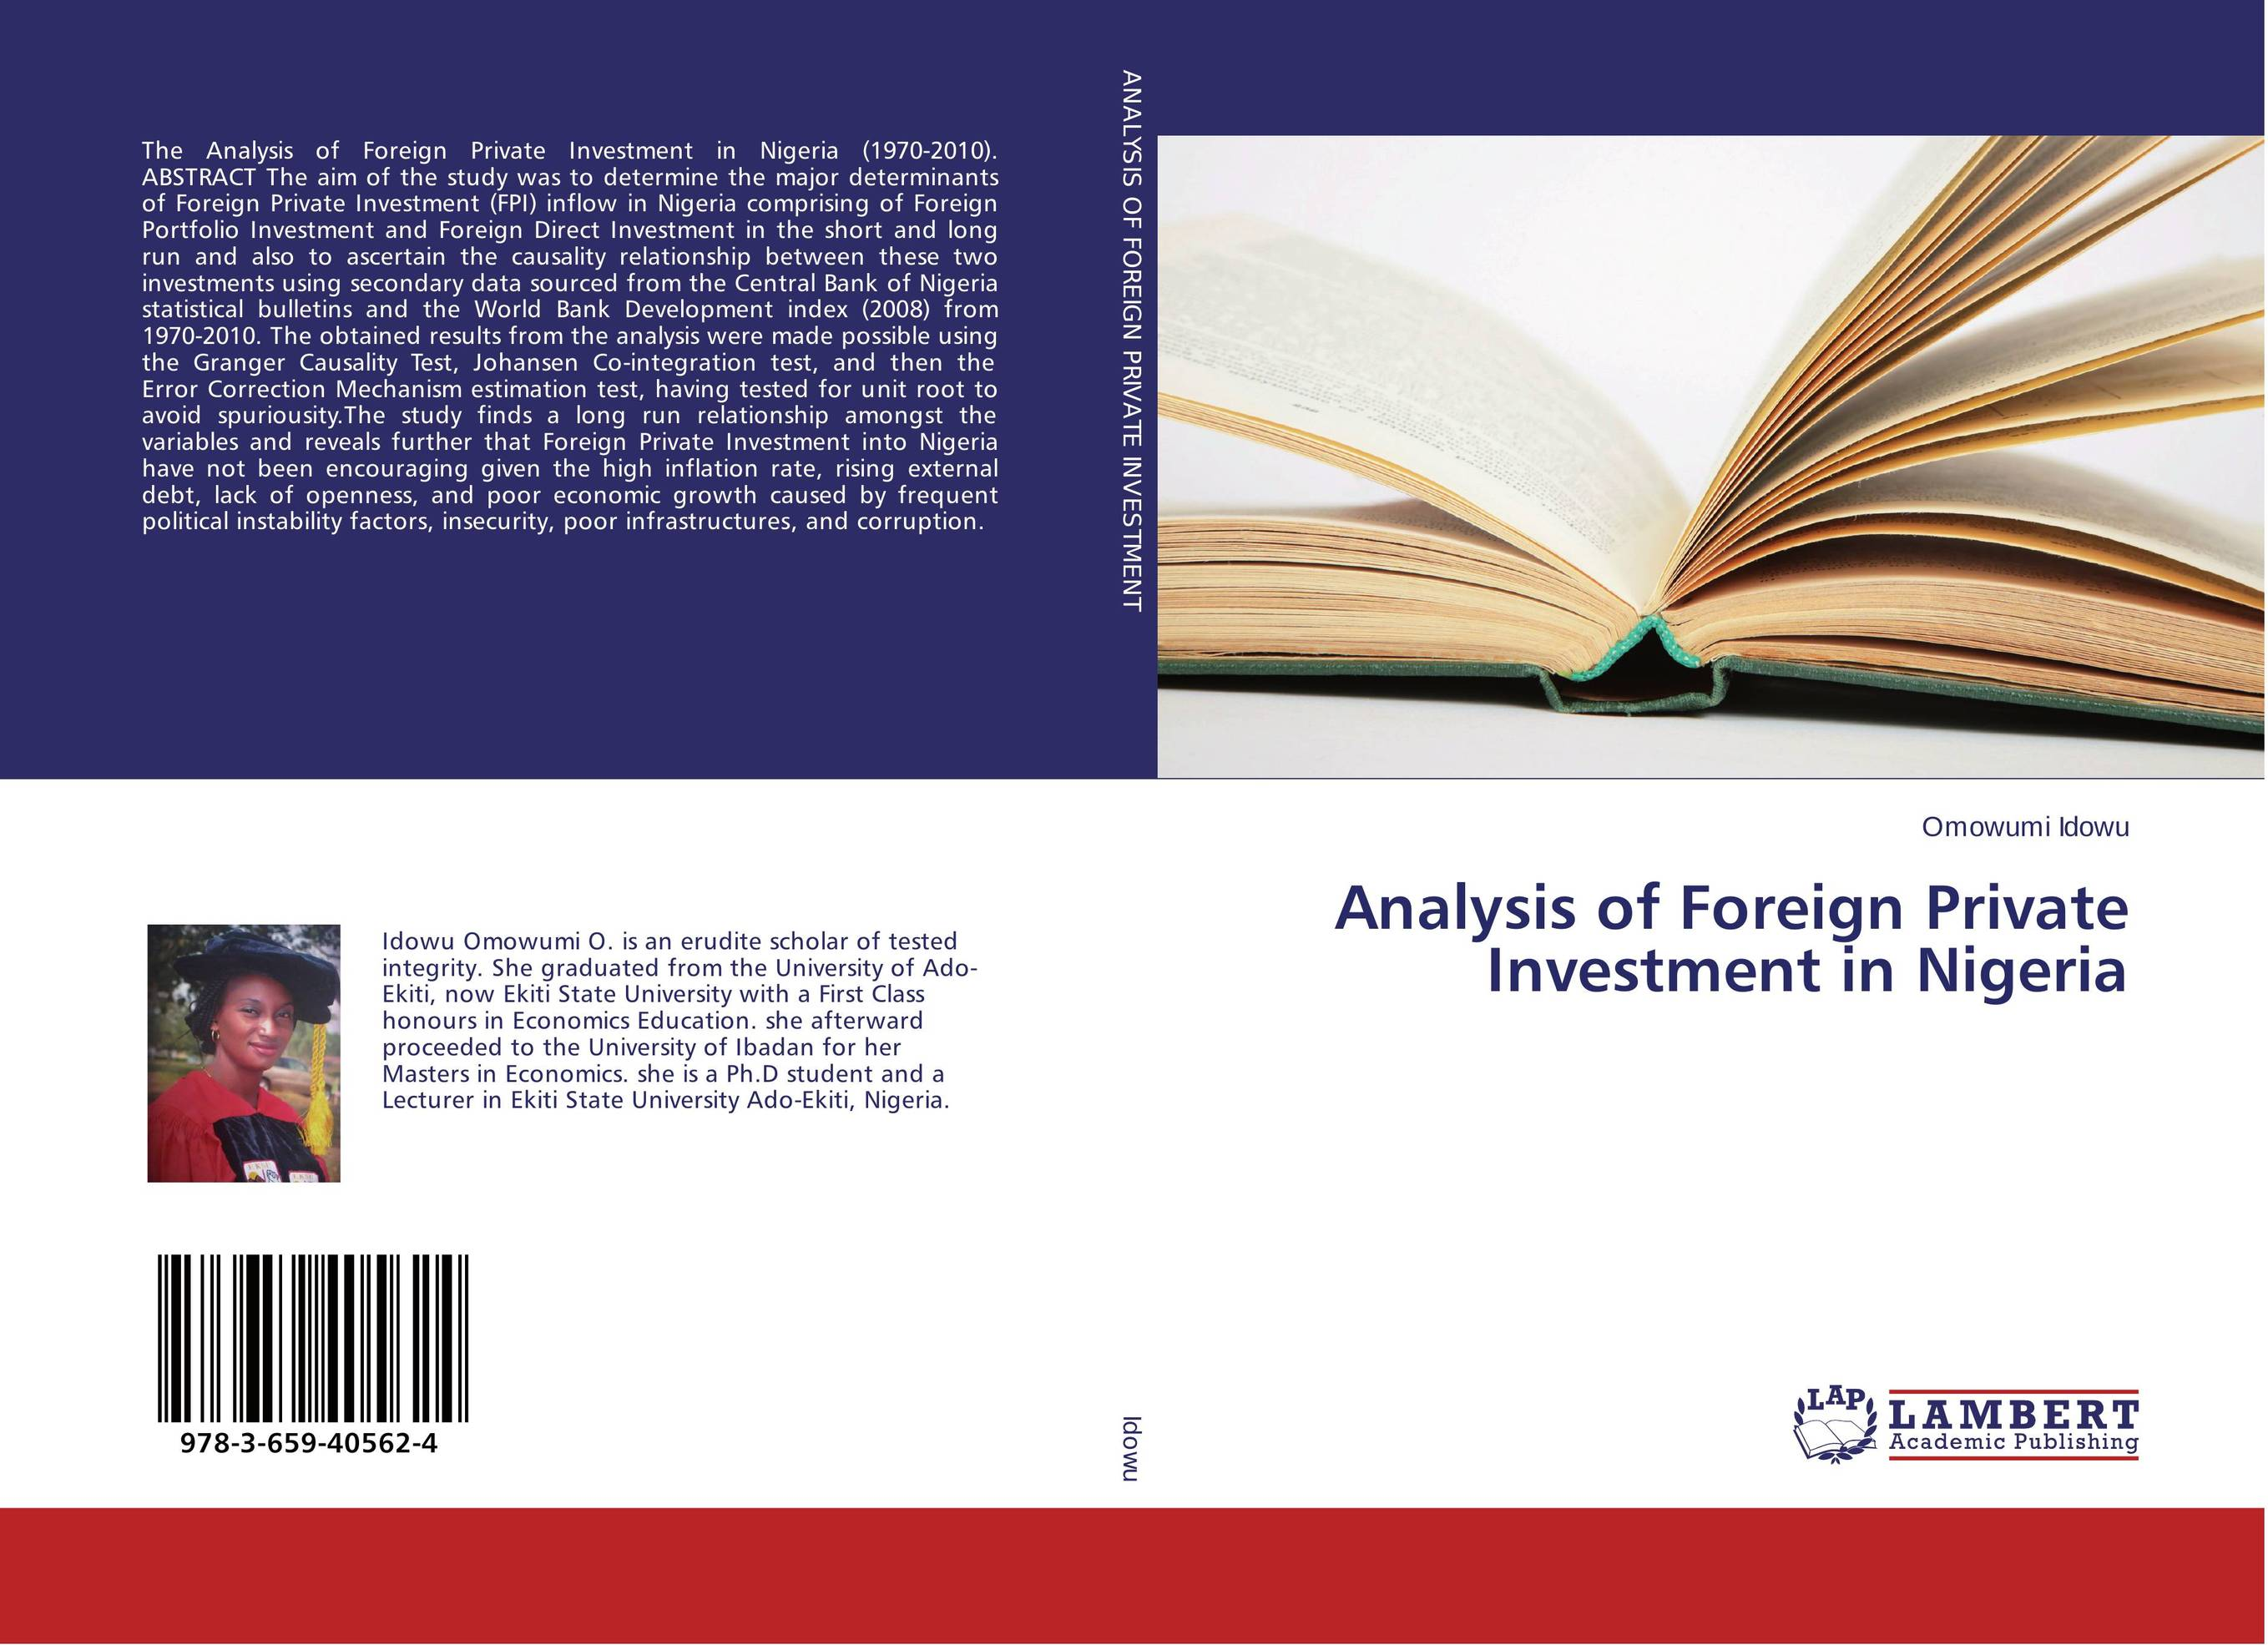 купить  Analysis of Foreign Private Investment in Nigeria  онлайн